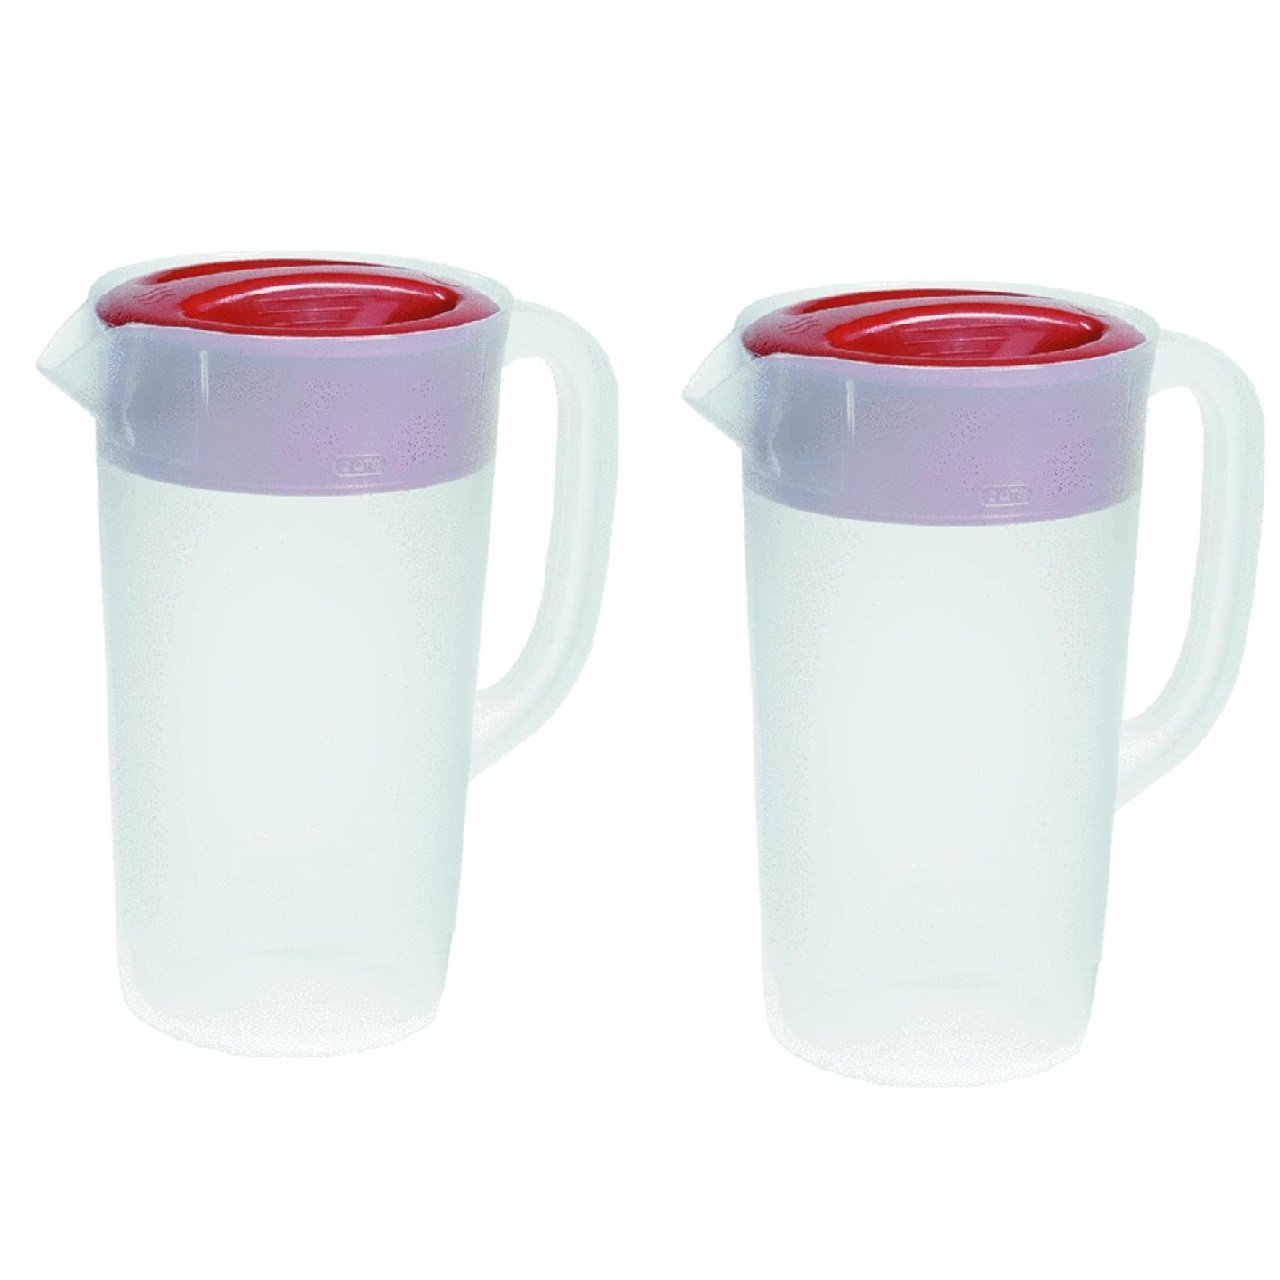 Rubbermaid Covered Pitcher 2.25 Qt - White with Red Cover Pack of 2